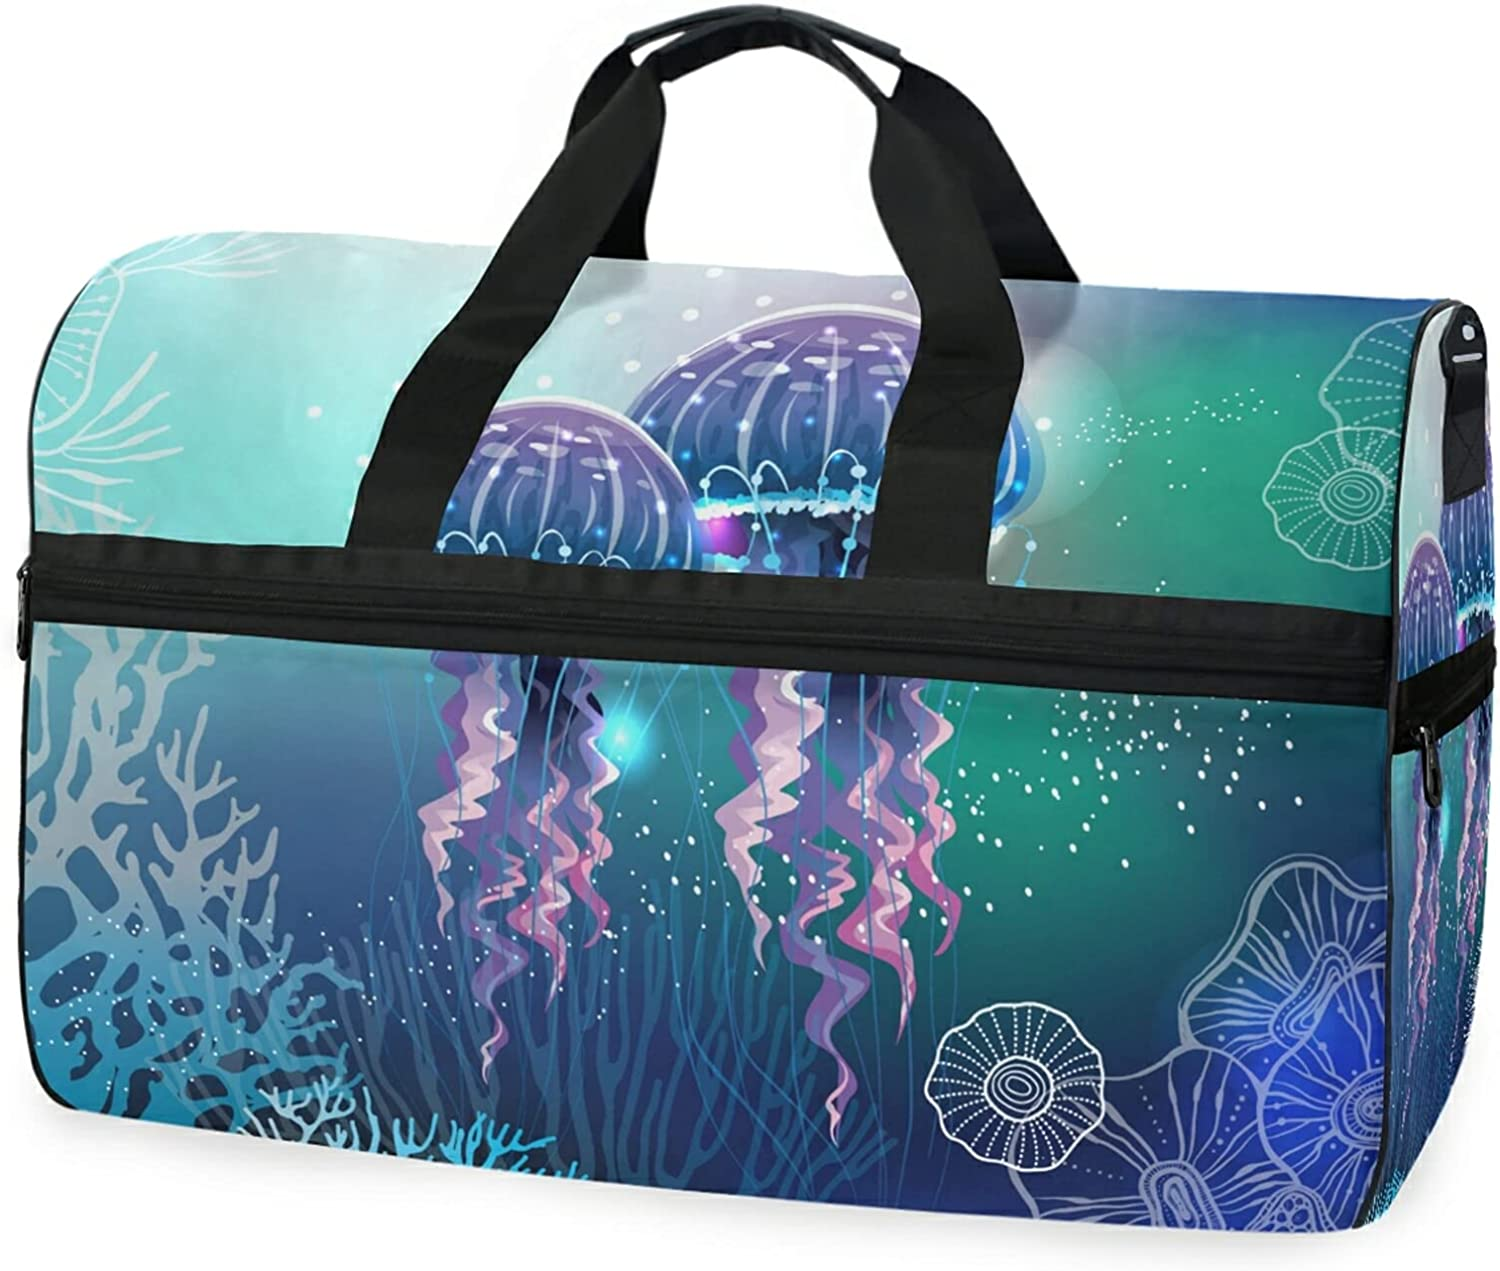 Jellyfish Fashion Travel Duffel Bag Luggage With Gym Co Sports Shoes Sale Special Price